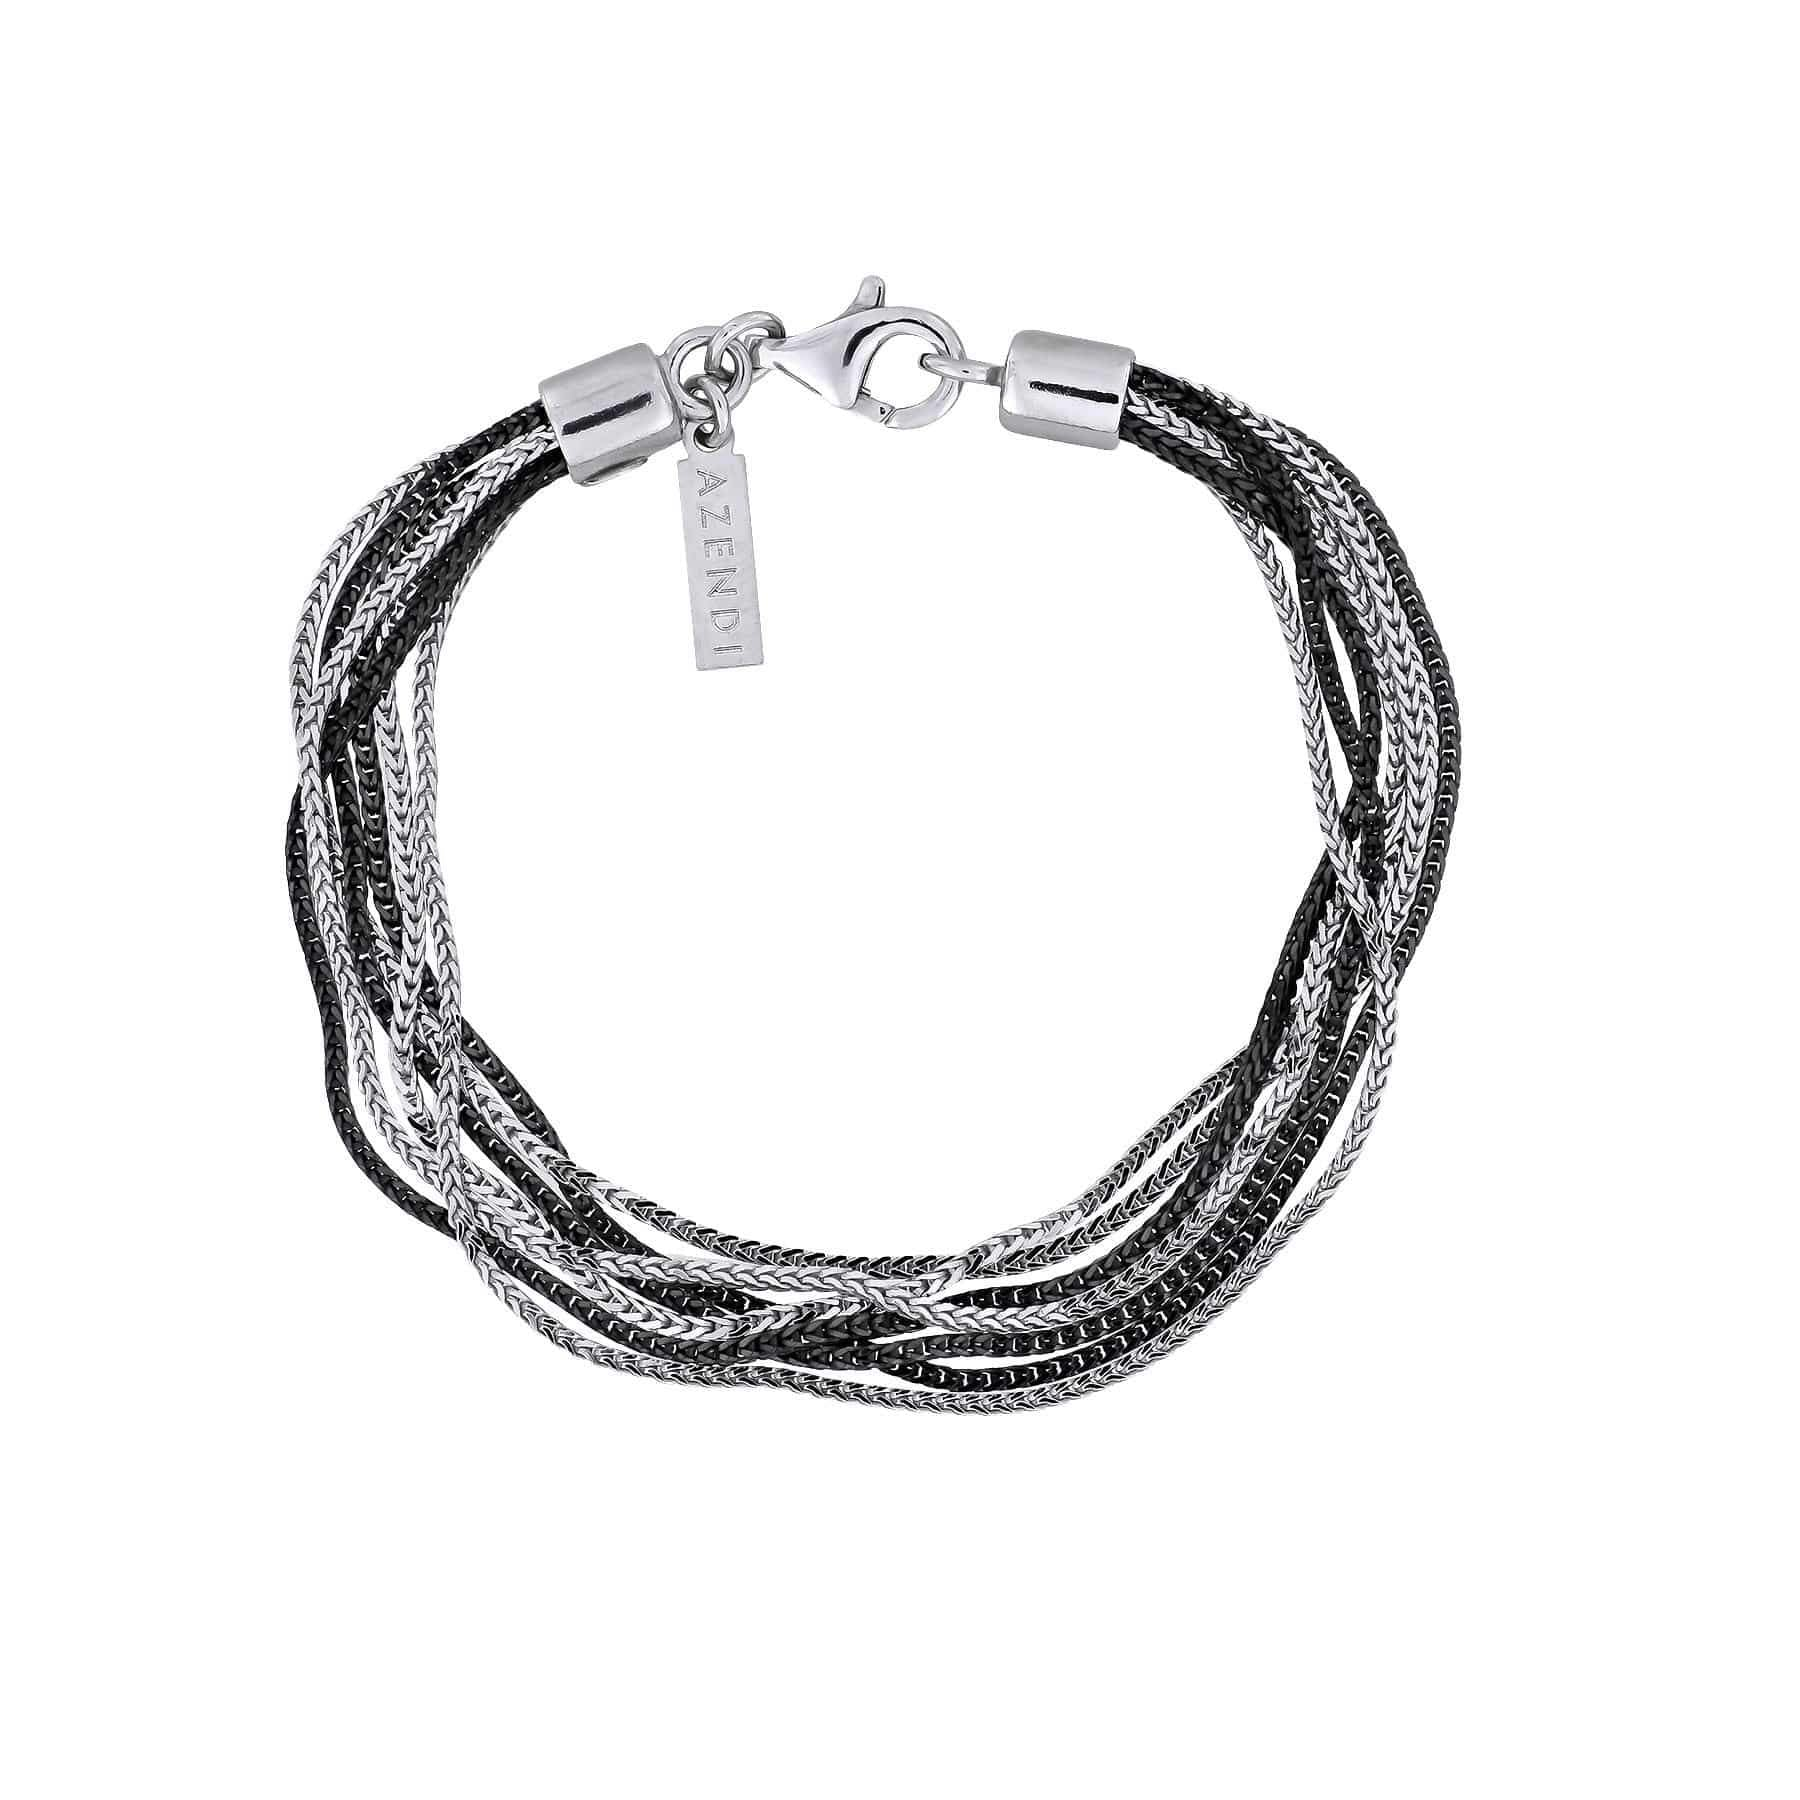 Multiple Strands Bracelet in Silver & Black Rhodium